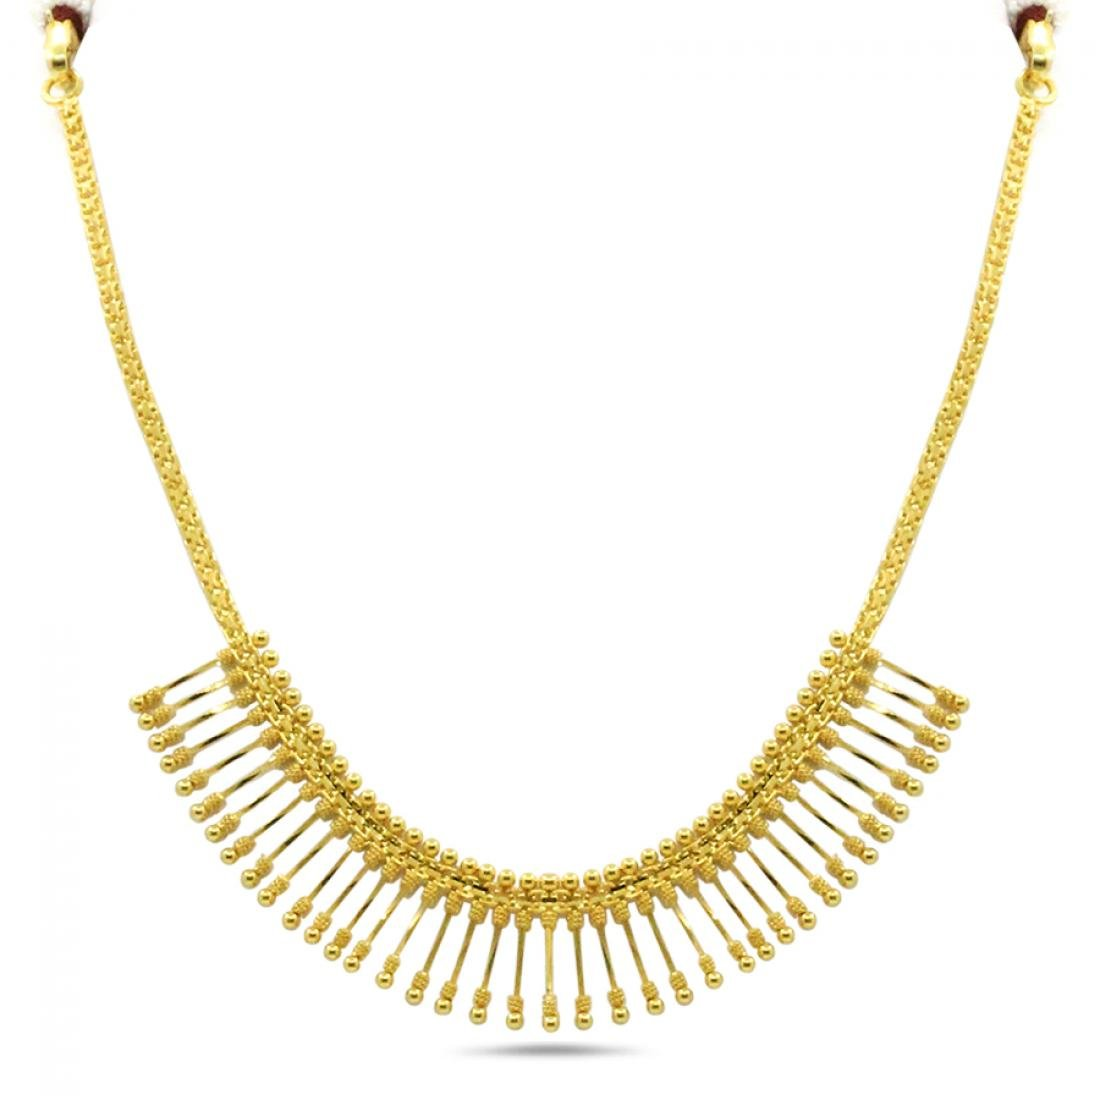 Buy Candere By Kalyan Jewellers 22kt Yellow Gold Necklace For Women At Amazon In